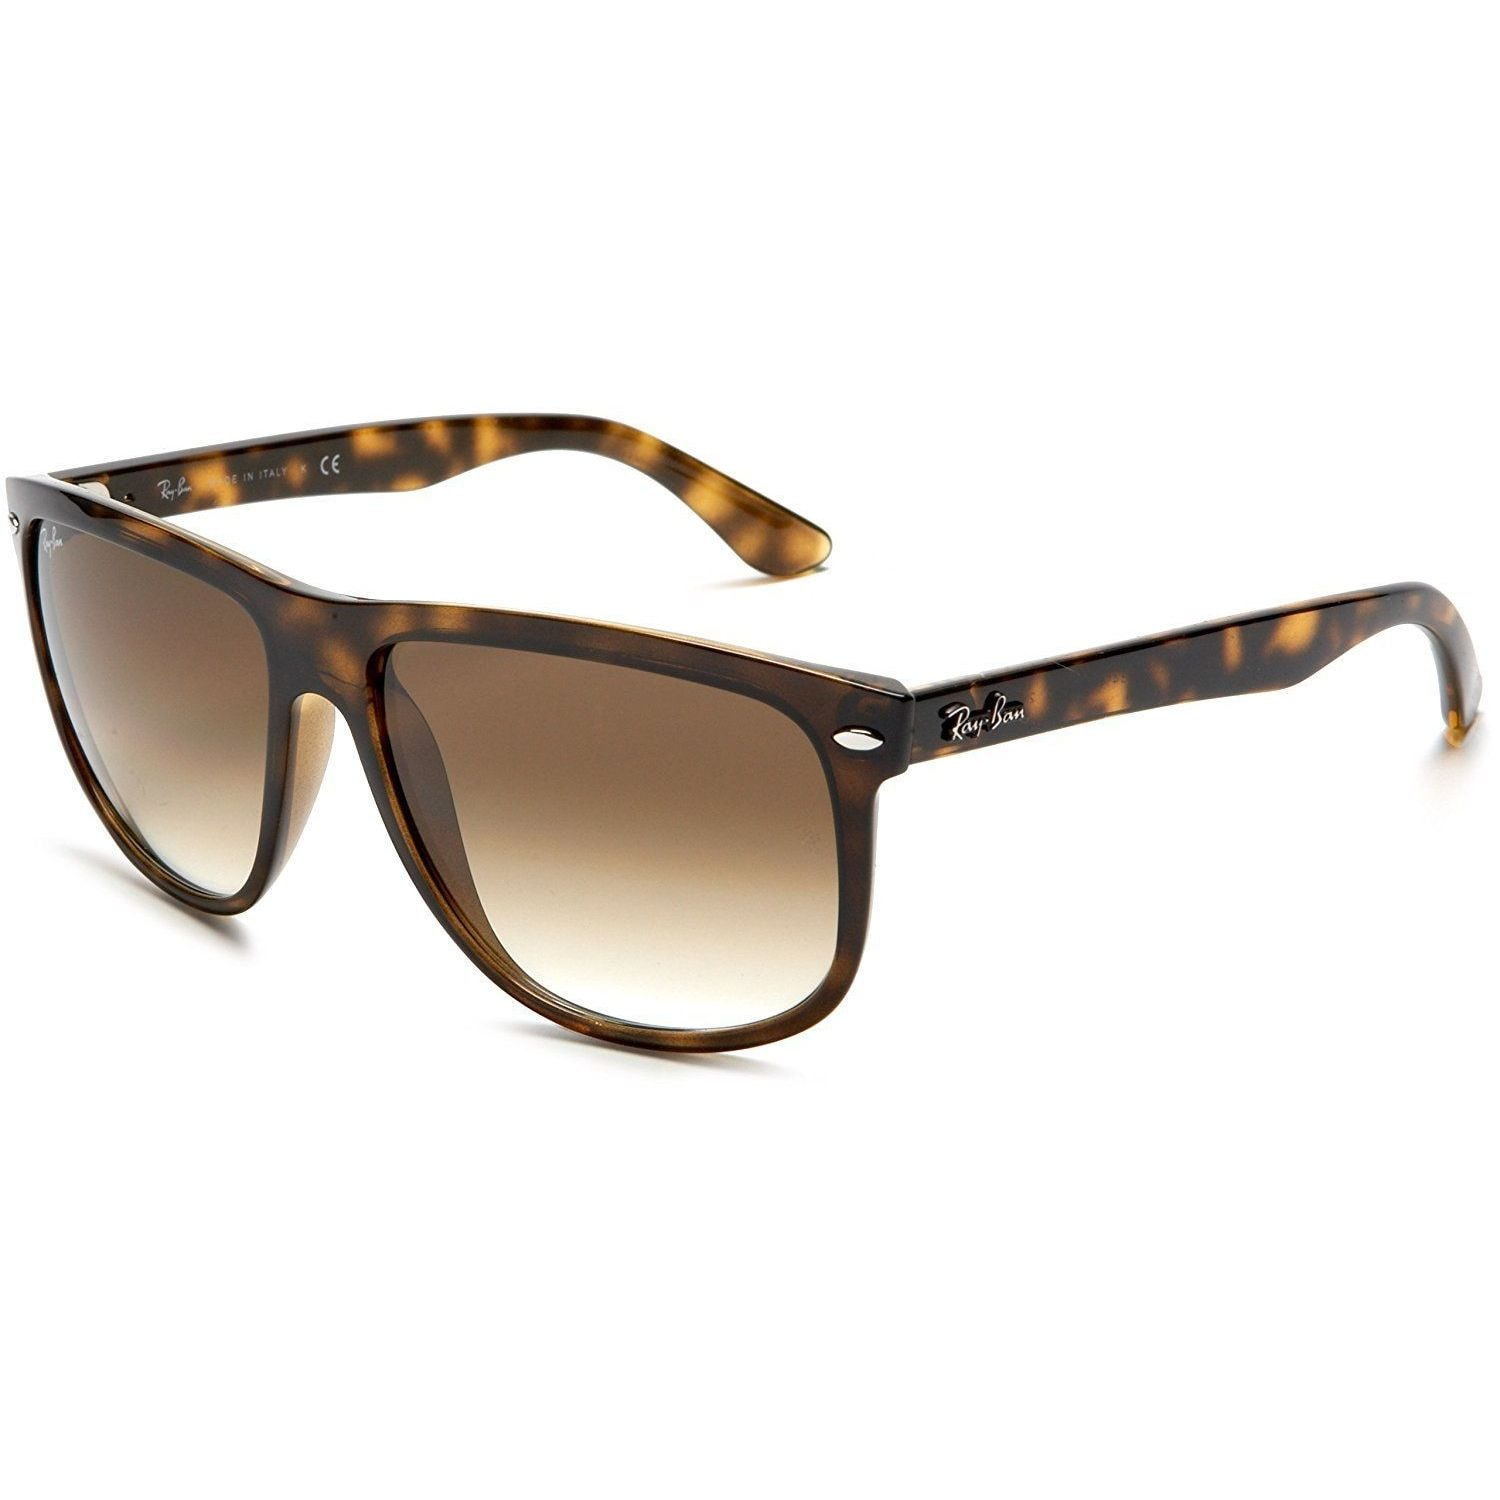 dac368f5b0 Shop Ray-Ban RB4147 710 51 Men s Tortoise Frame Light Brown Gradient 56mm Lens  Sunglasses - Free Shipping Today - Overstock - 15288129